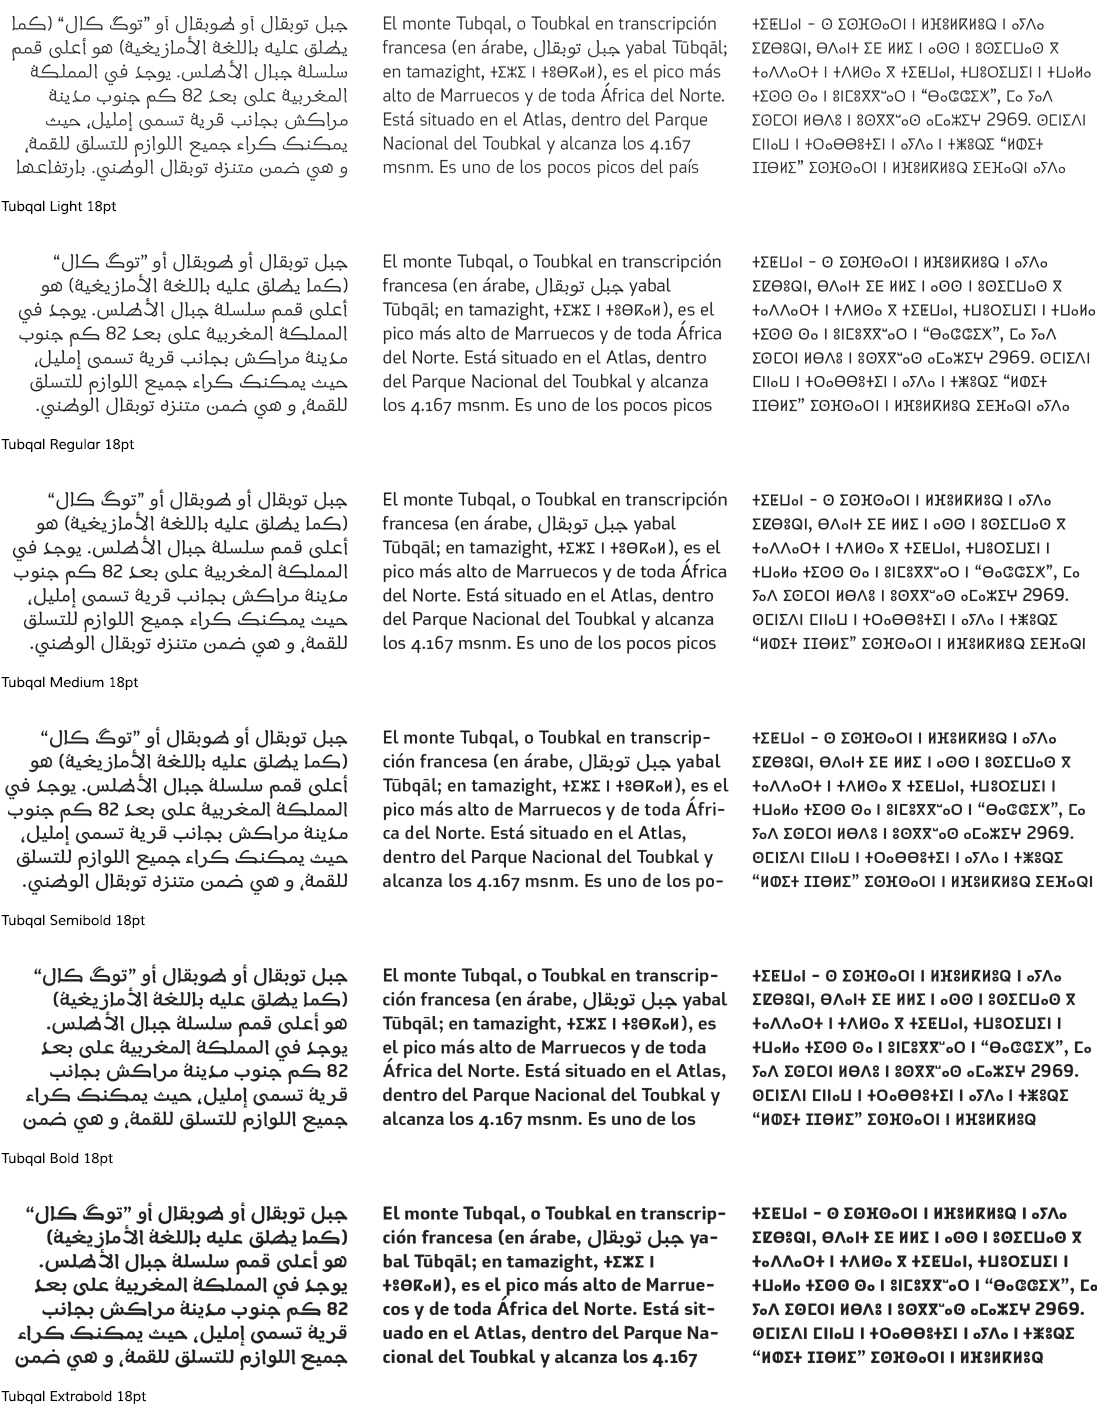 Tubqal Pro text samples